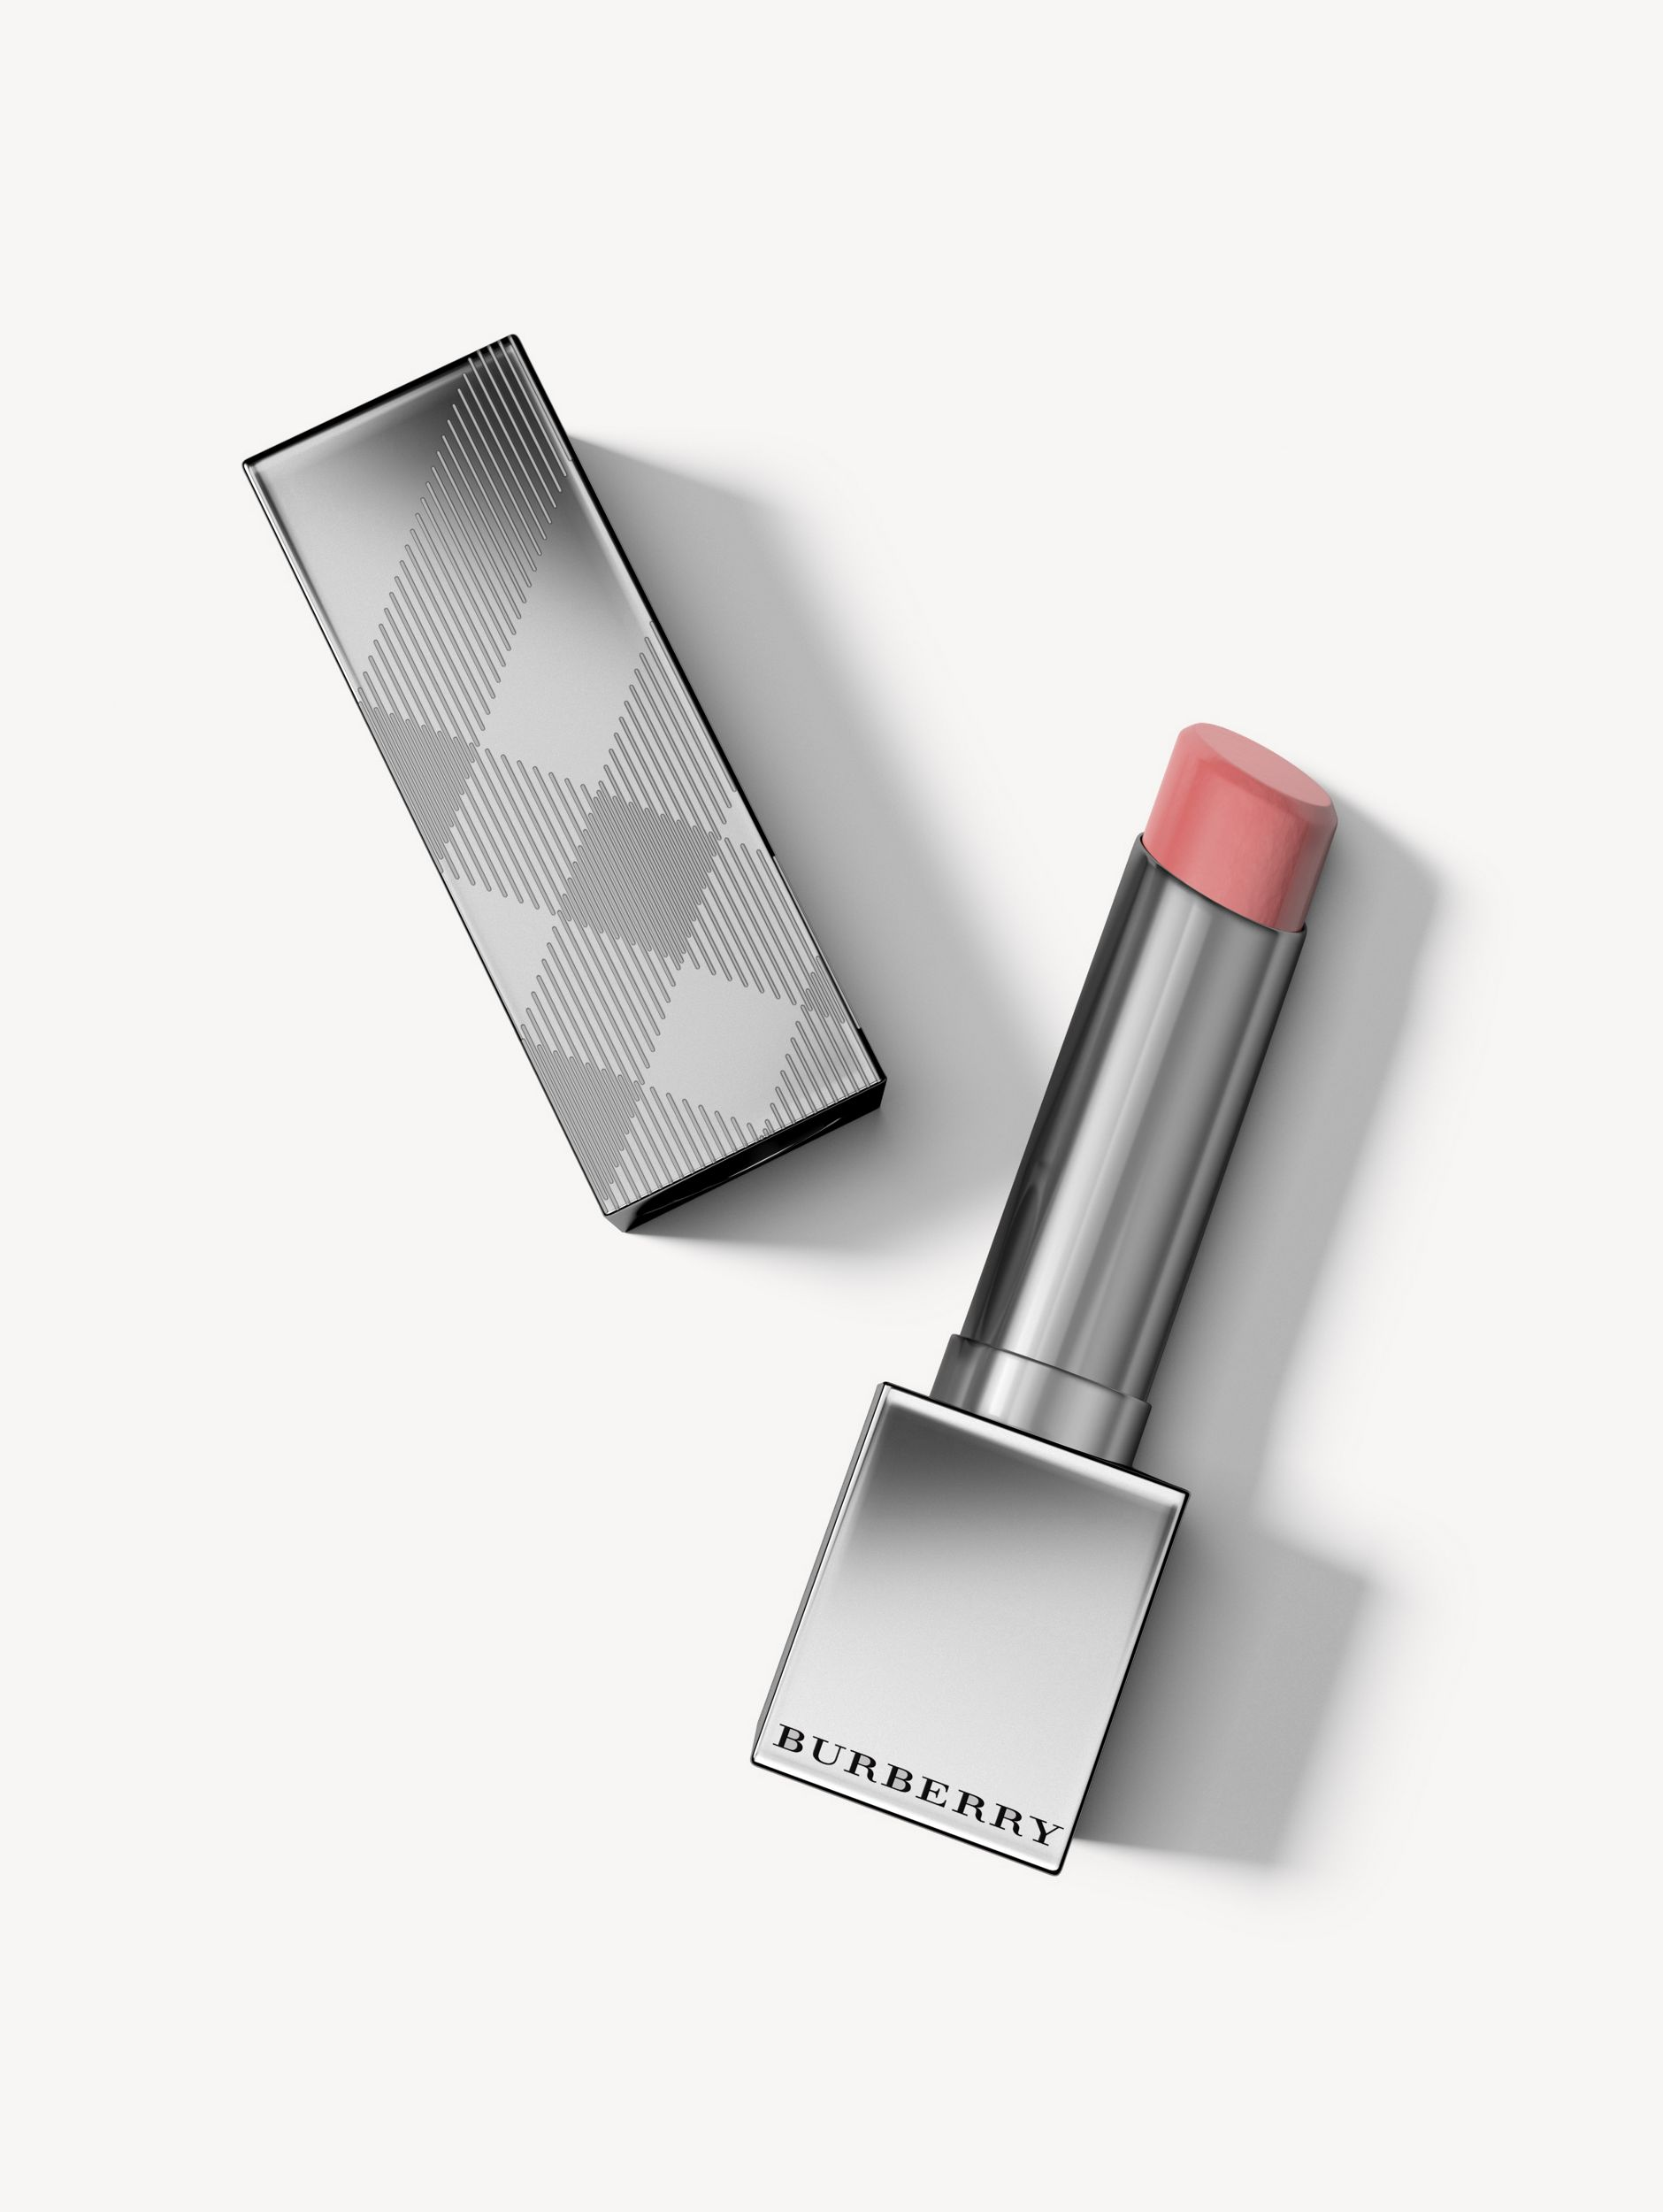 Burberry Kisses Sheer – Orchid Pink No.213 - Women | Burberry Hong Kong S.A.R - 1